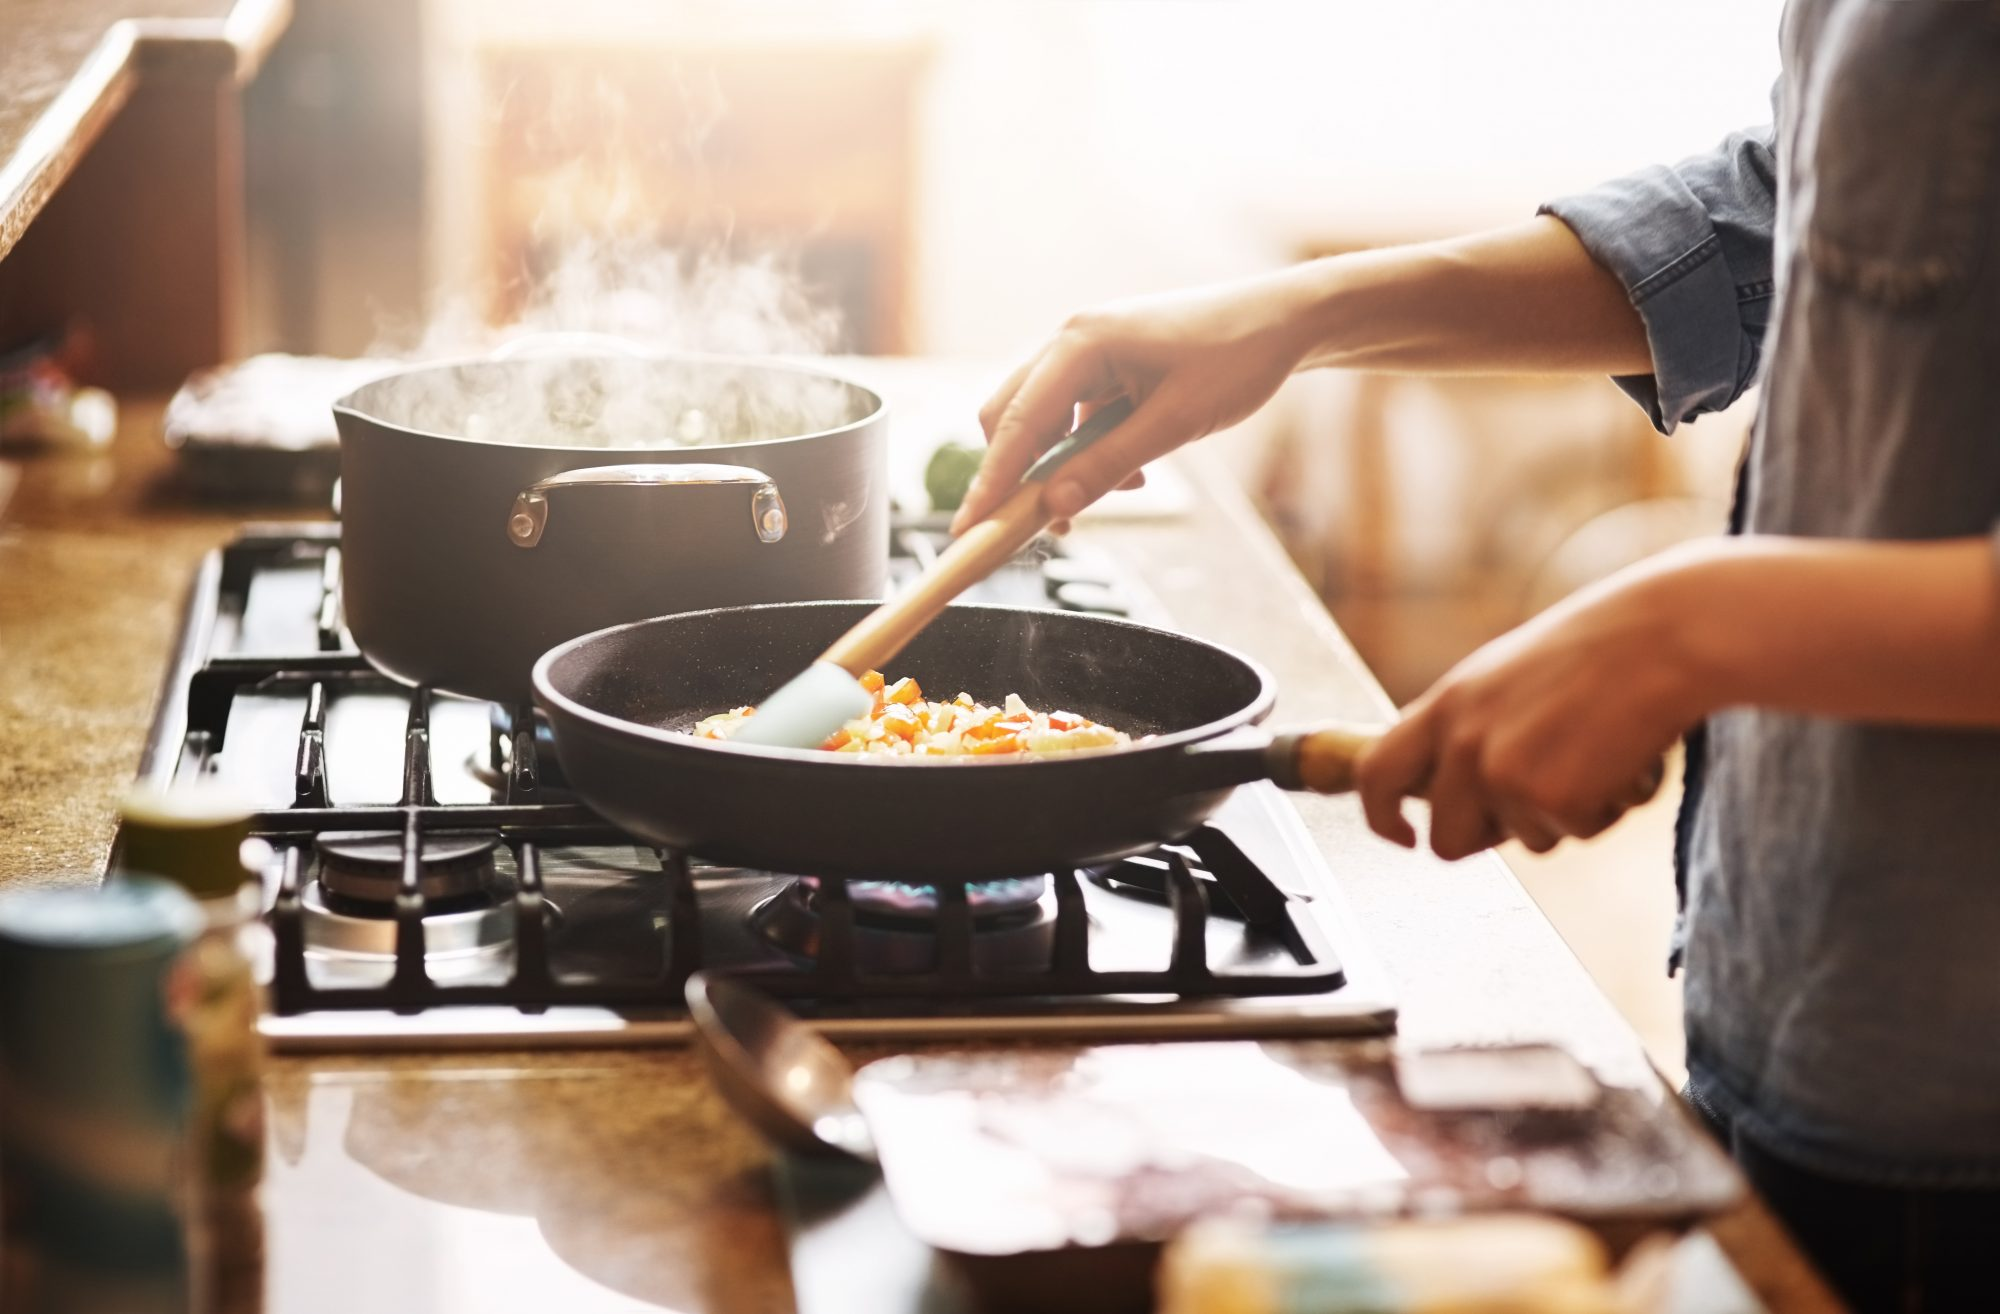 022119_Getty Cooking Image